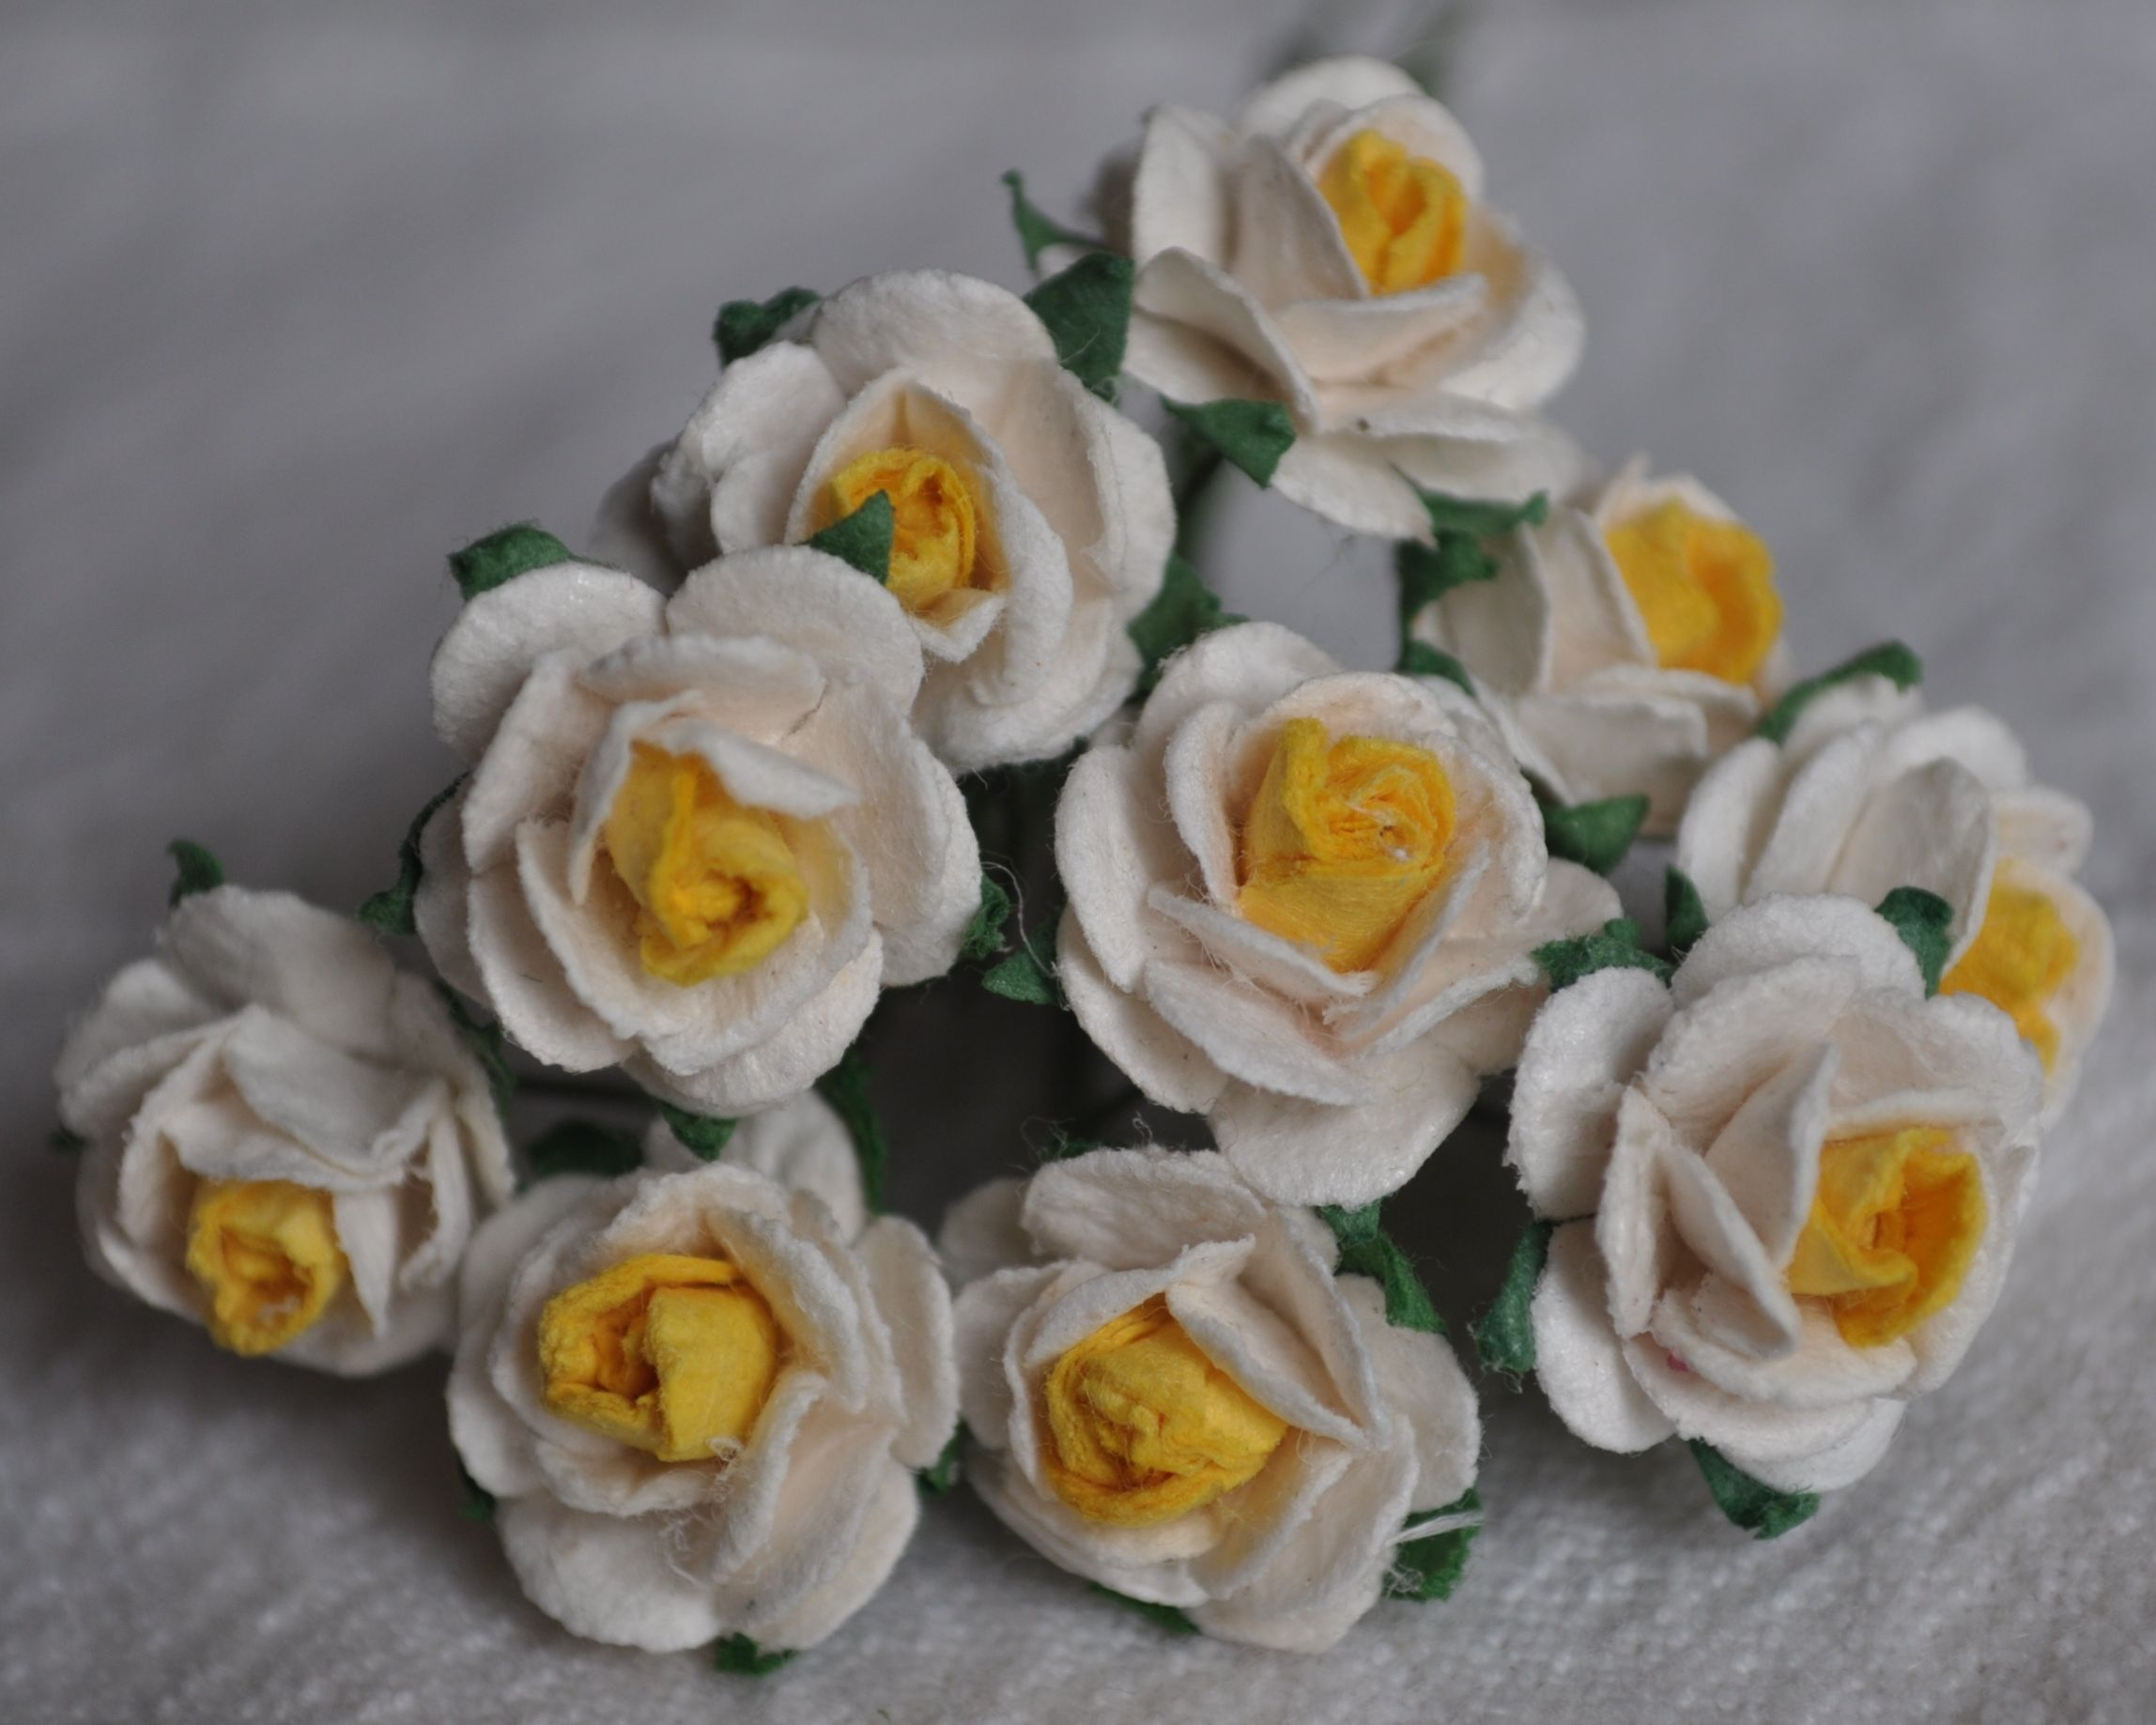 15cm White With Yellow Center Mulberry Paper Roses